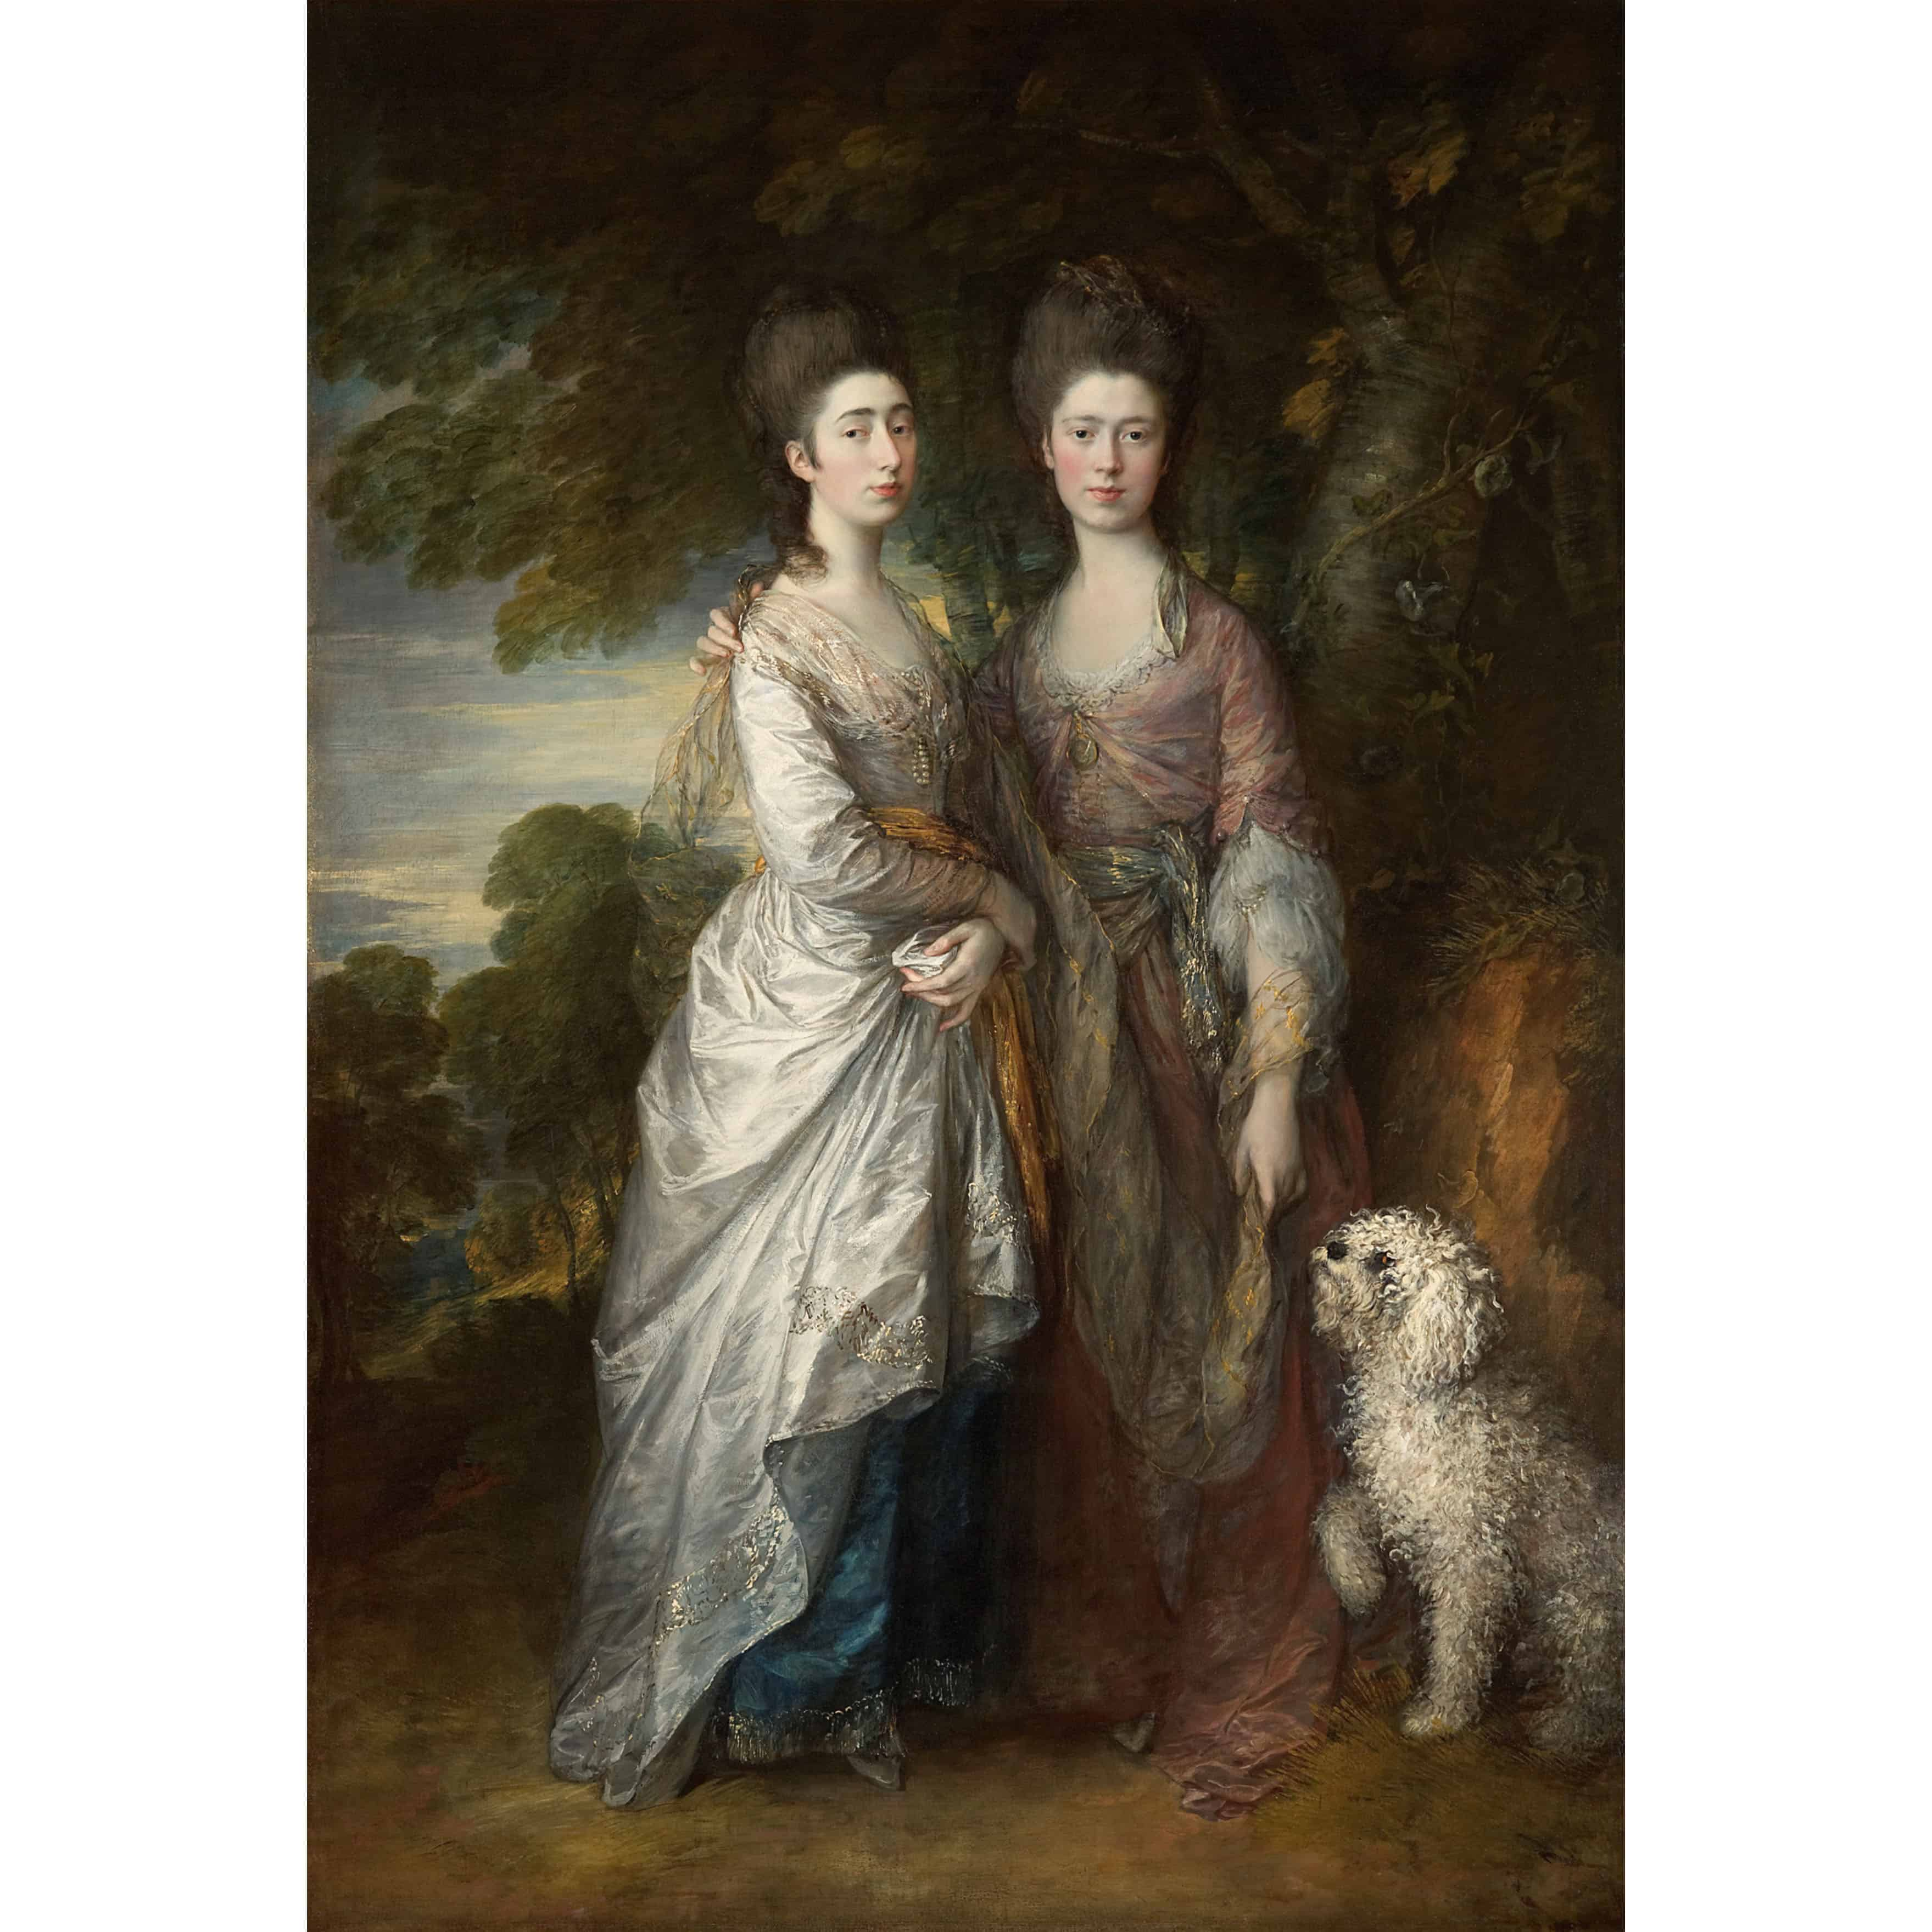 Family portraits by iconic British artist Thomas Gainsborough anticipate modern ideas Of family